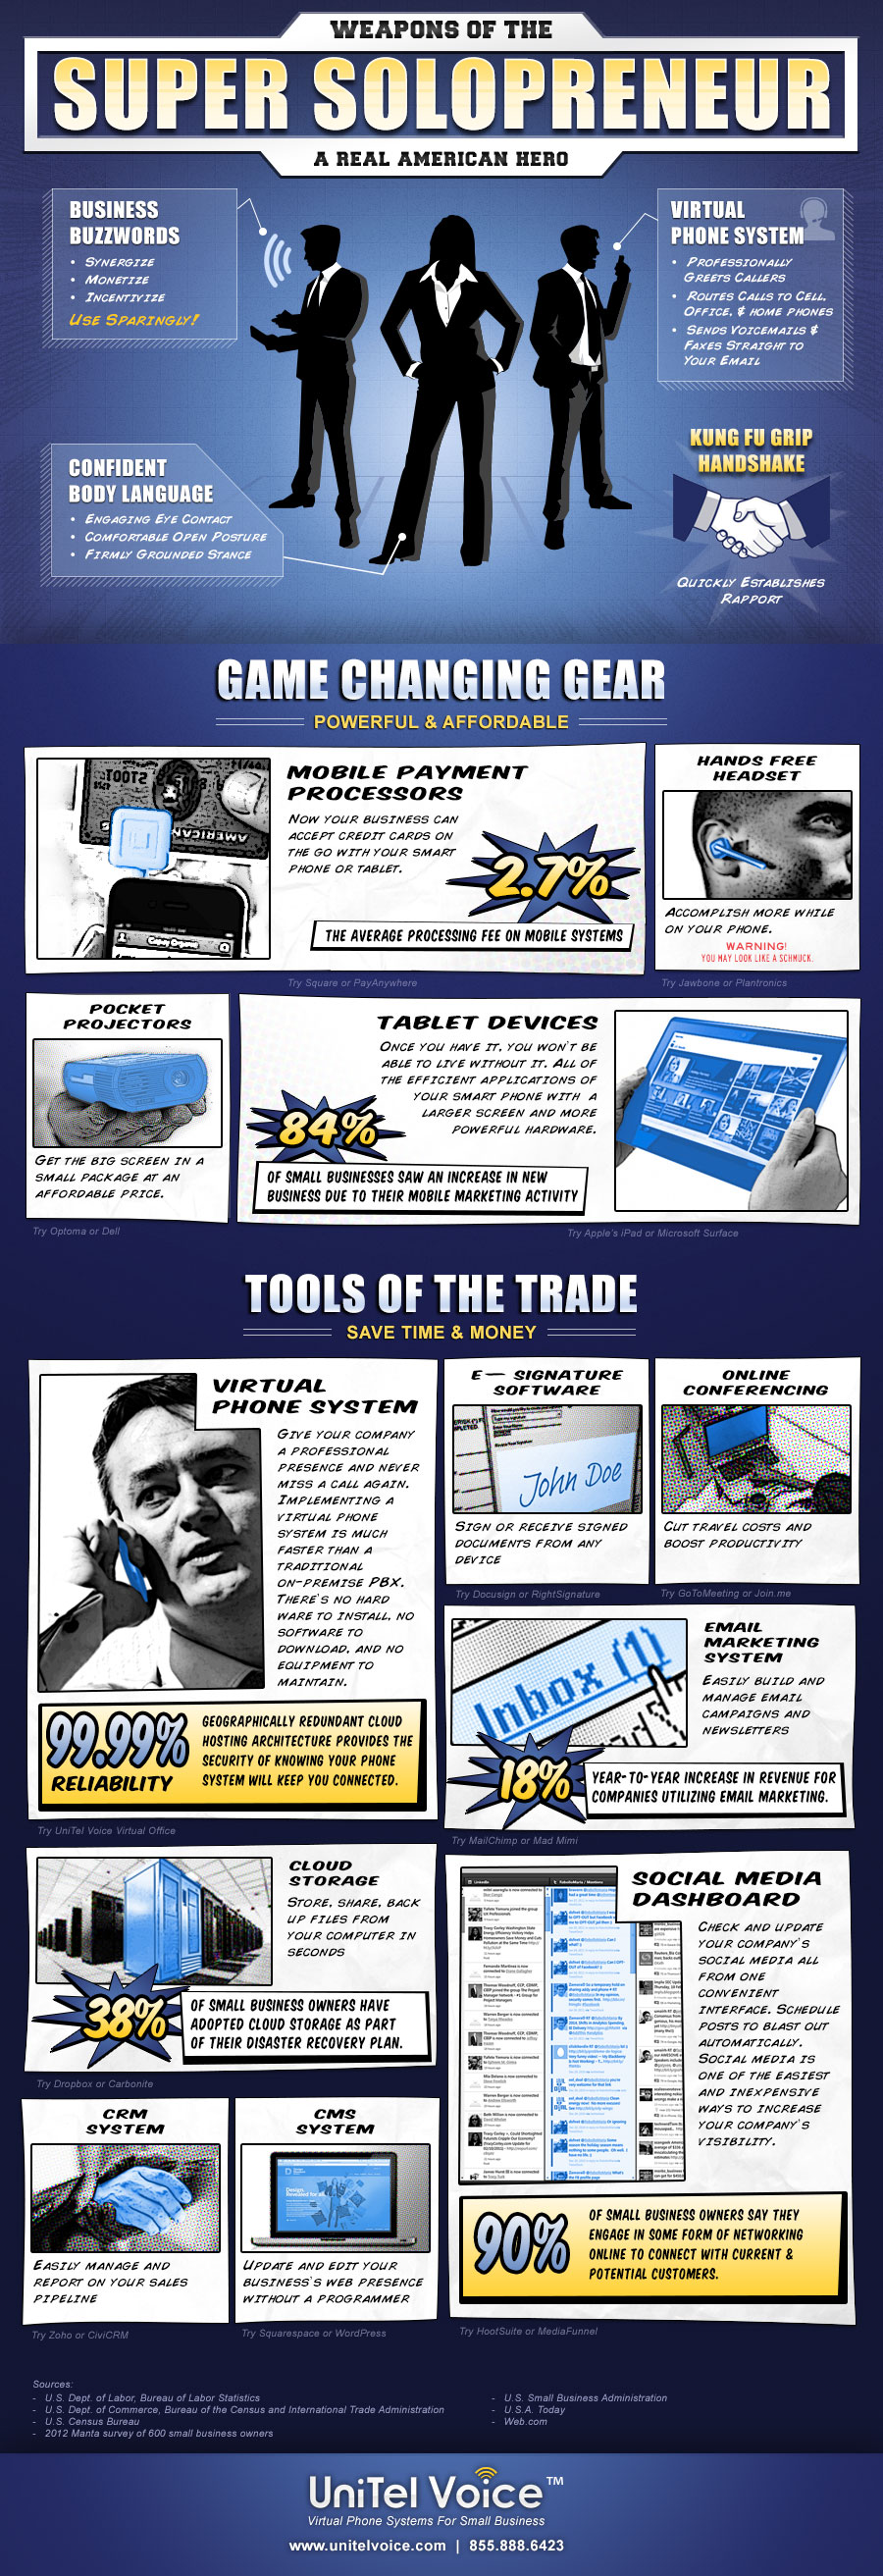 solopreneur-business-tools-infographic